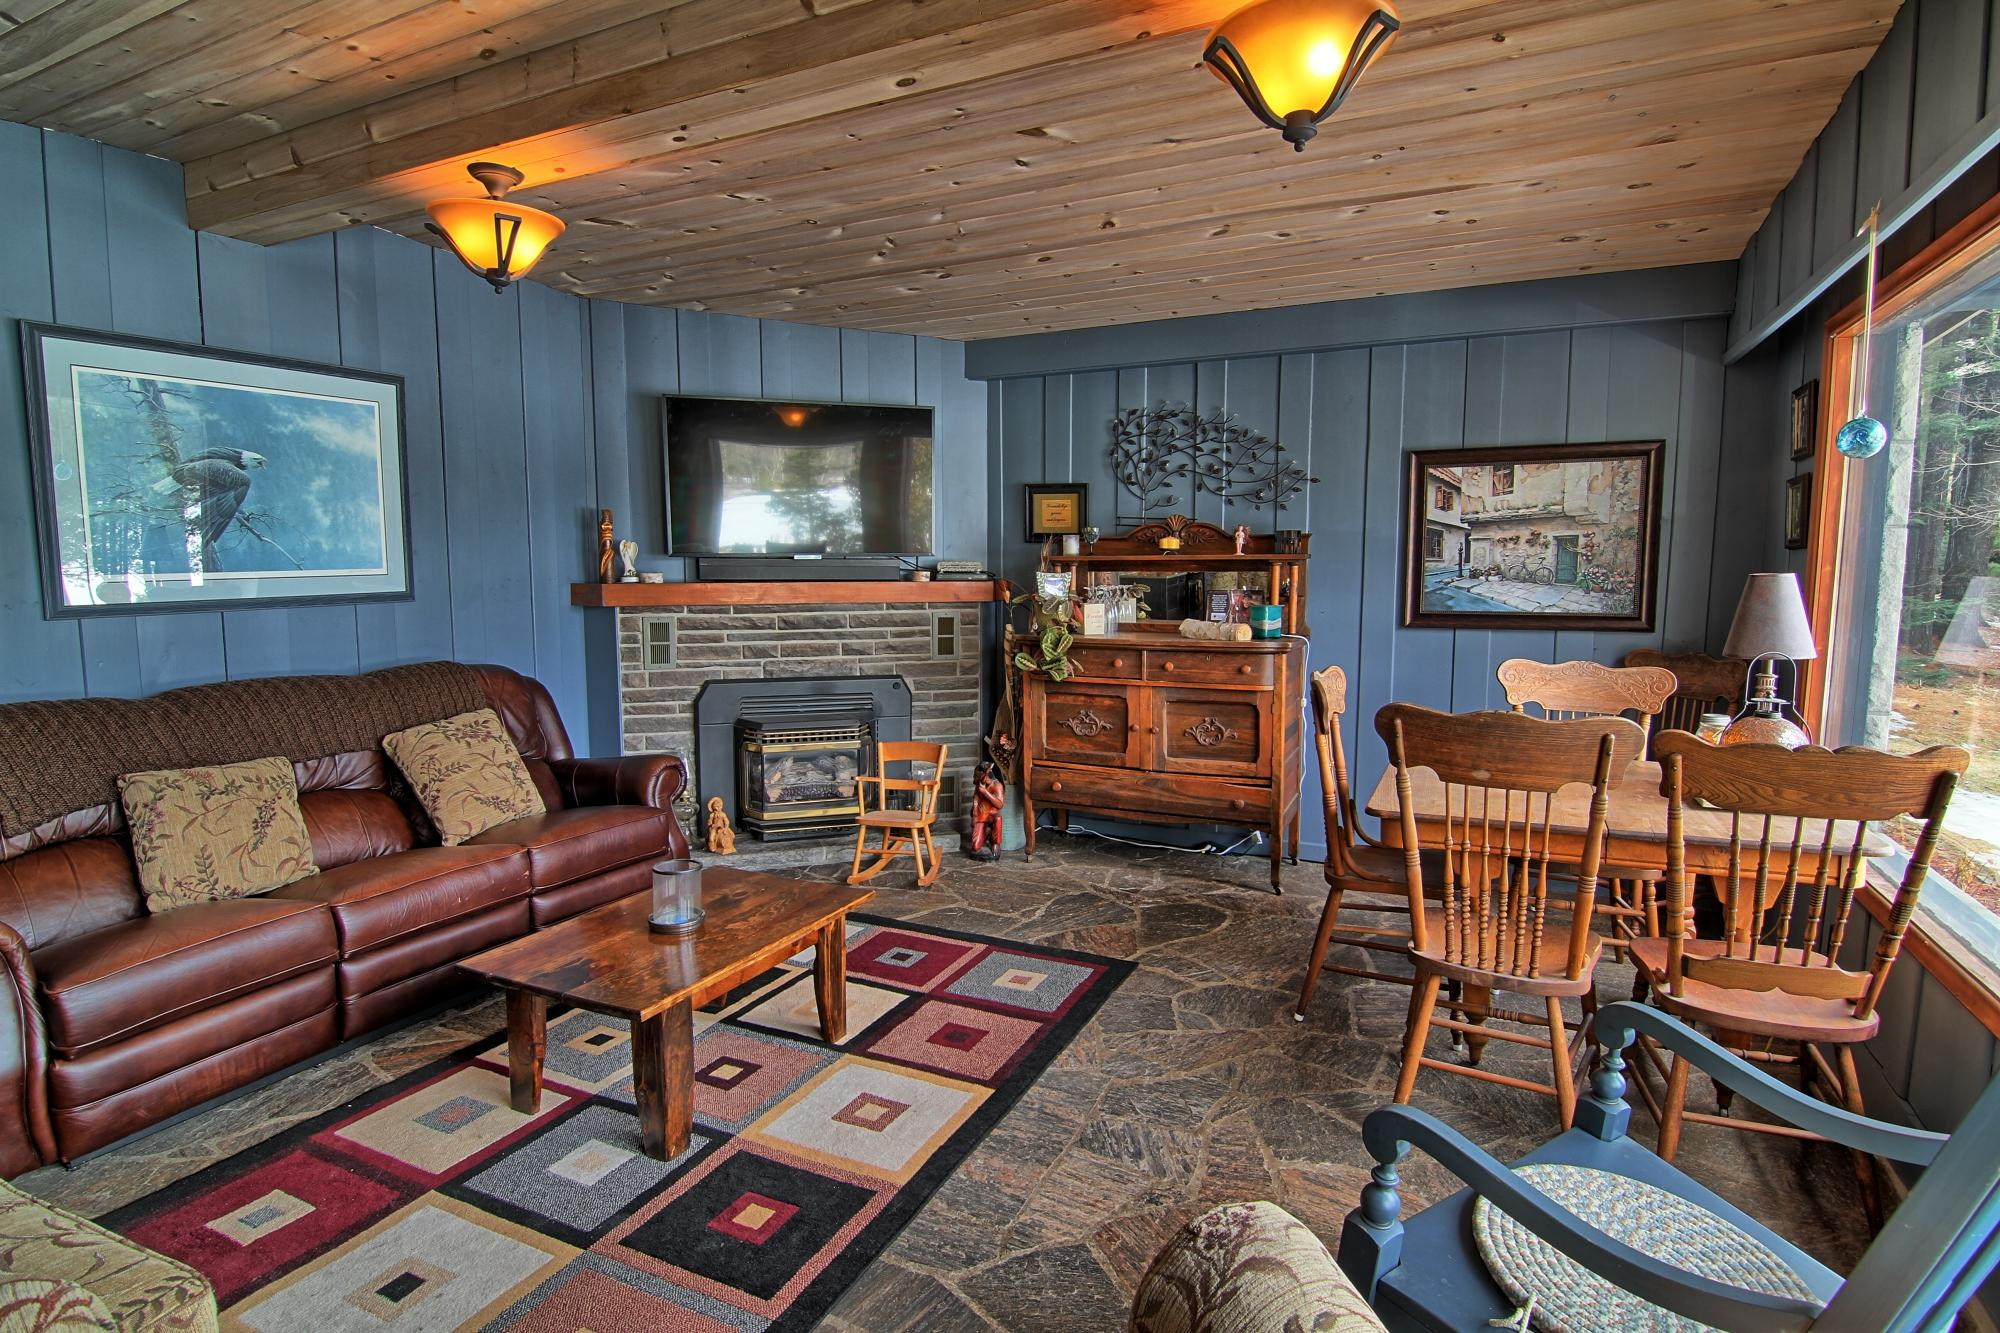 rental with ski rent or and private deck romantic jet haliburton cottage in muskoka option atv a rentals to snowmobile